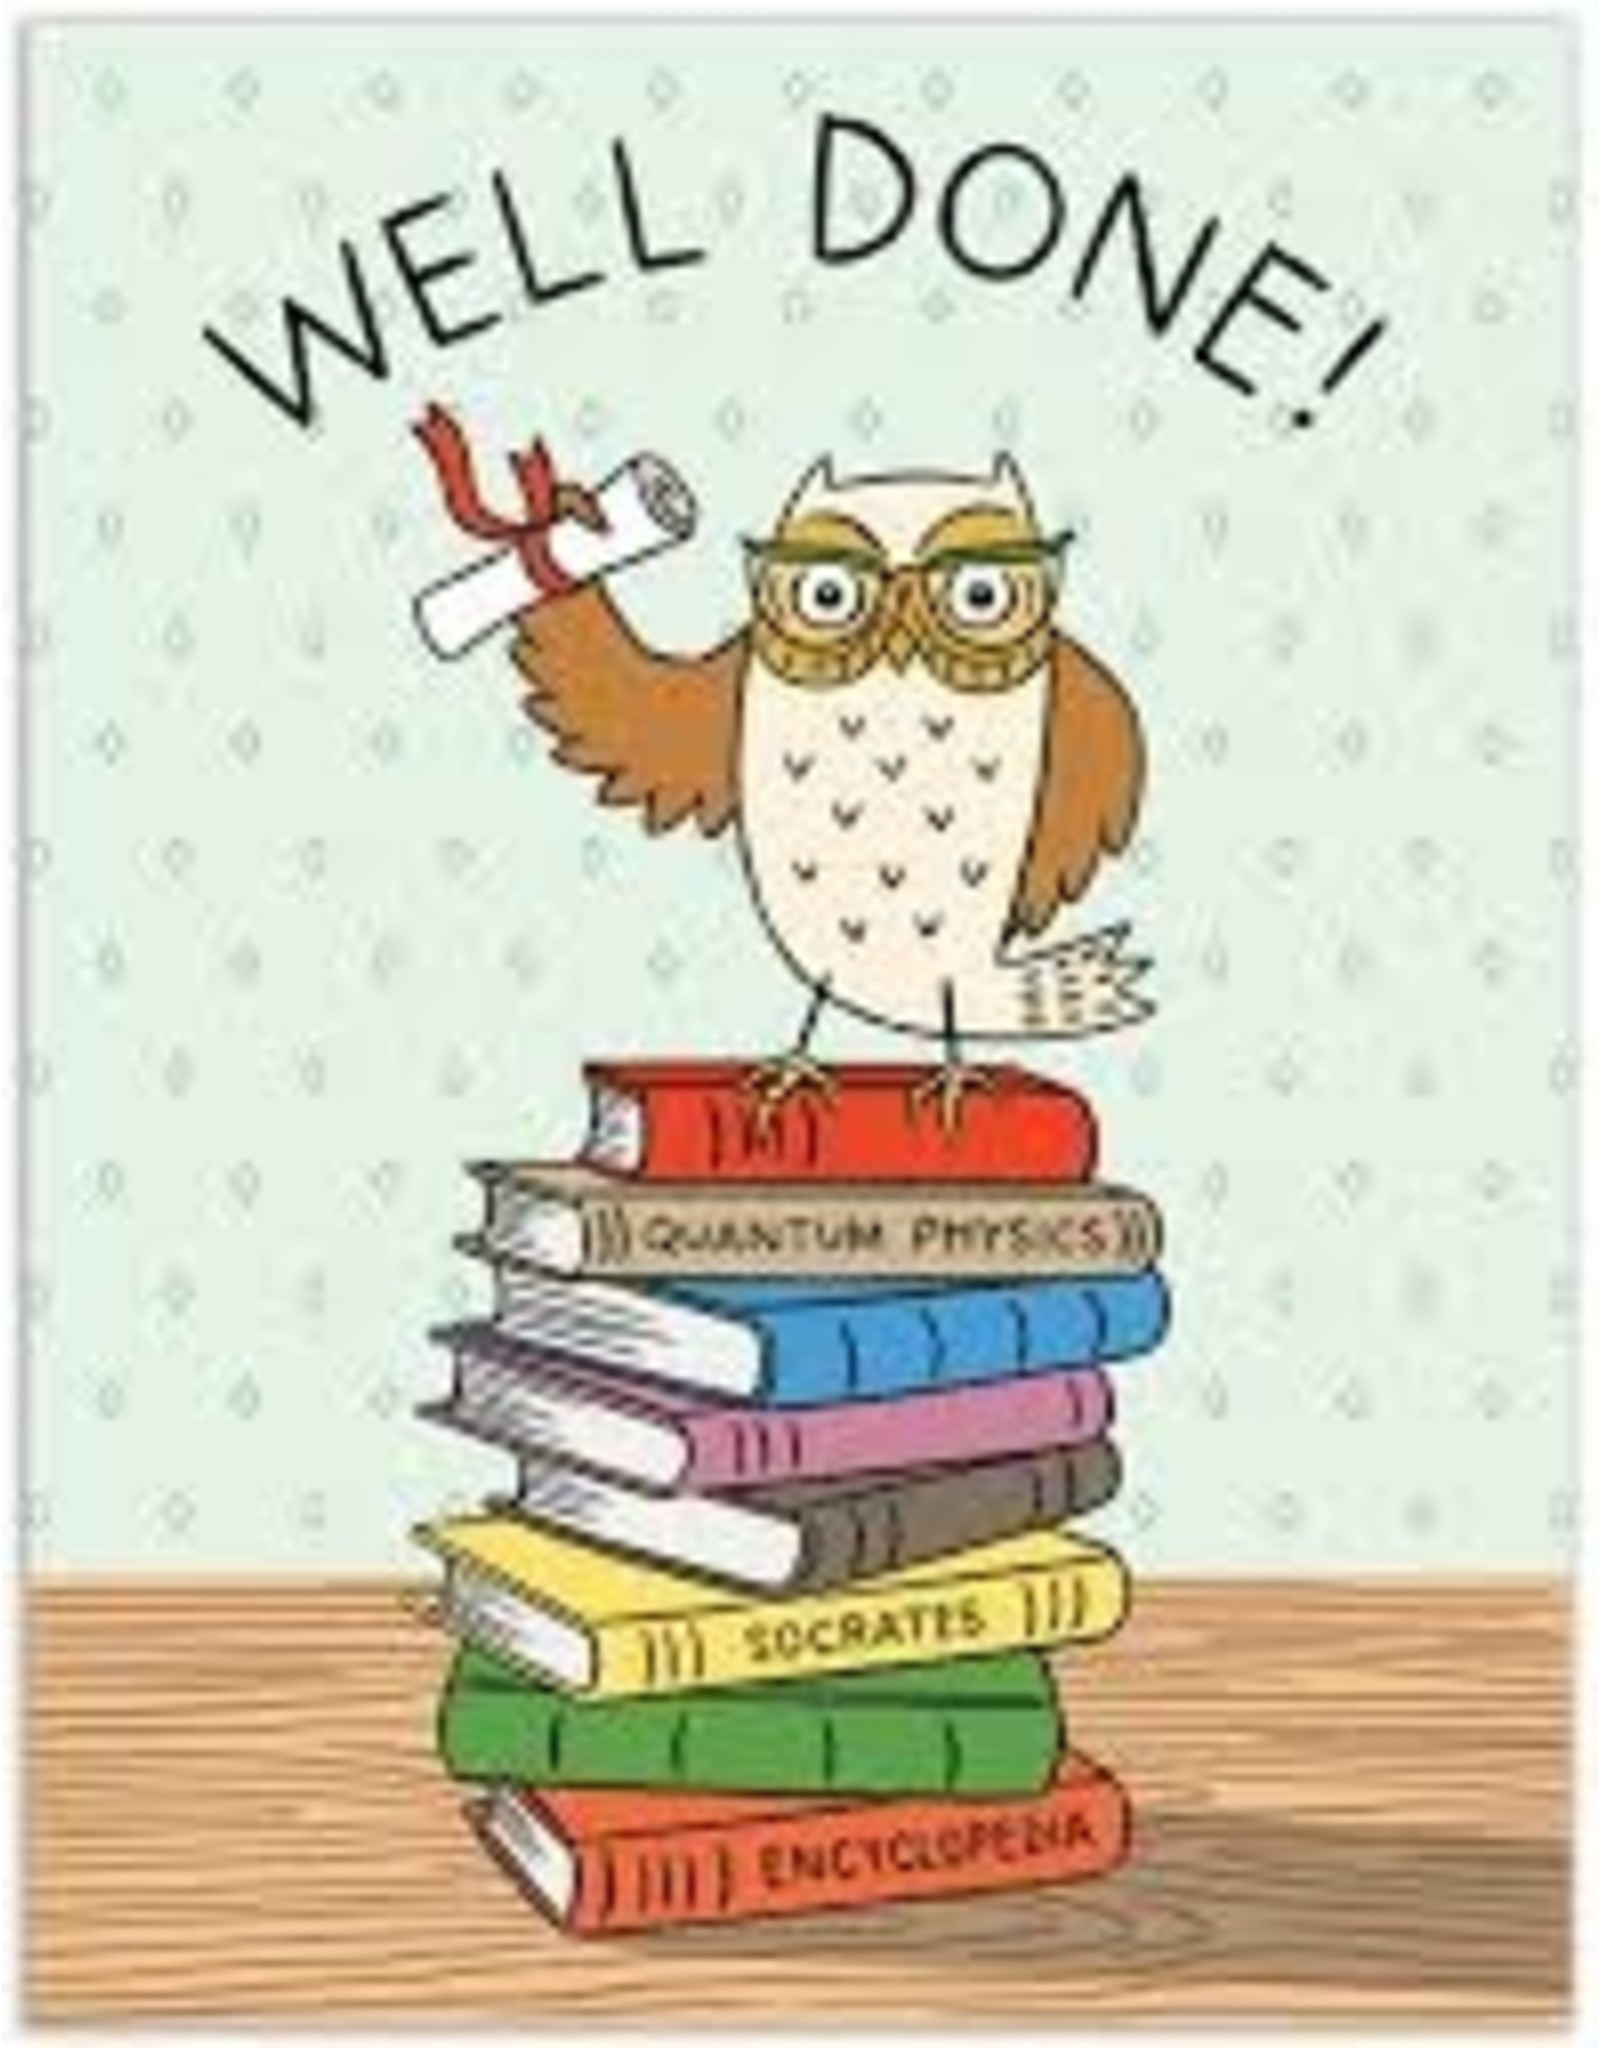 Graduation Card: Well Done!